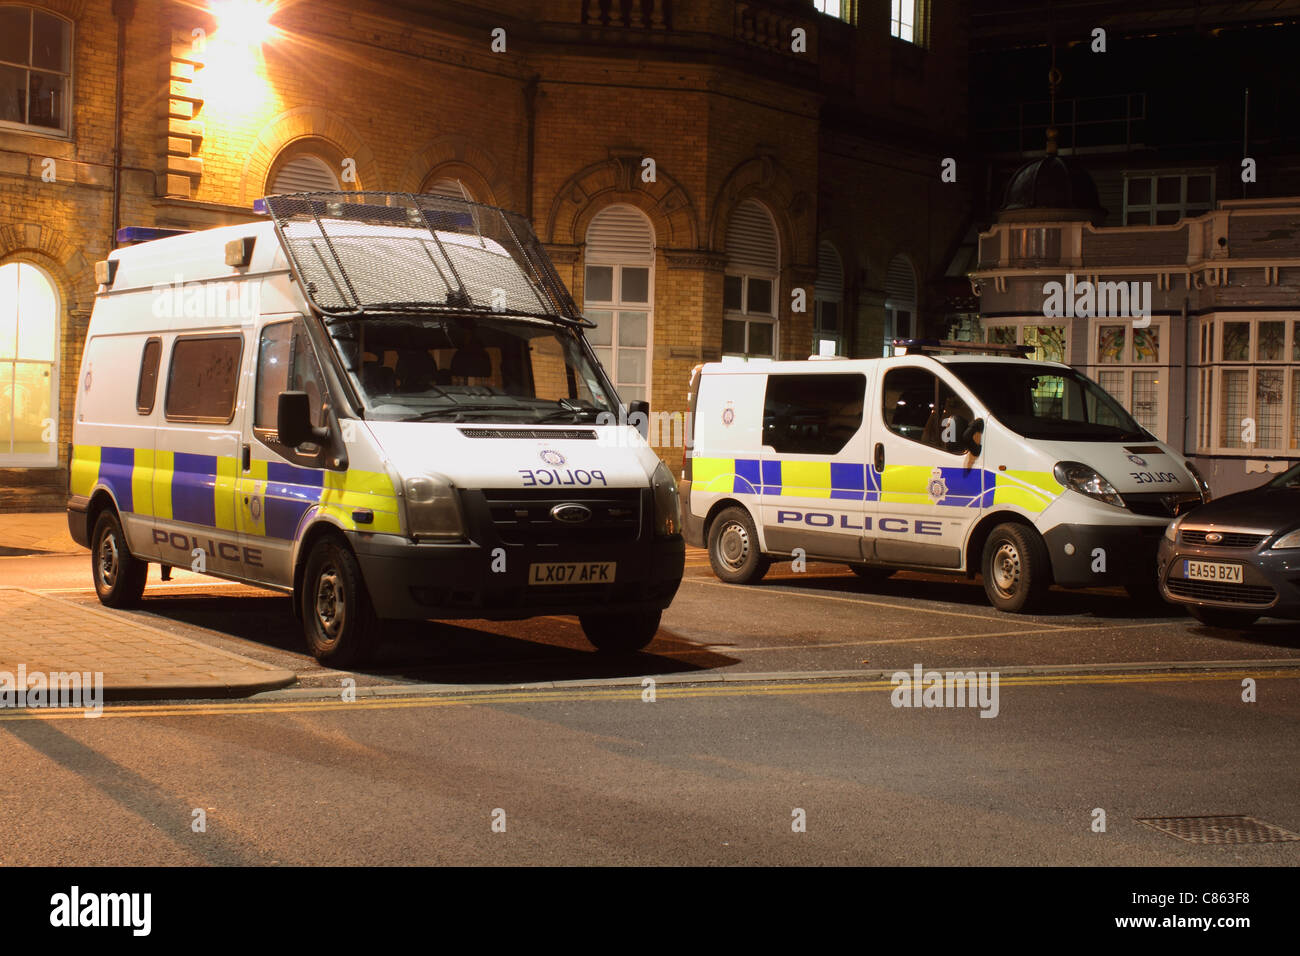 police car uk riot van with wire mesh windscreen guard - Stock Image